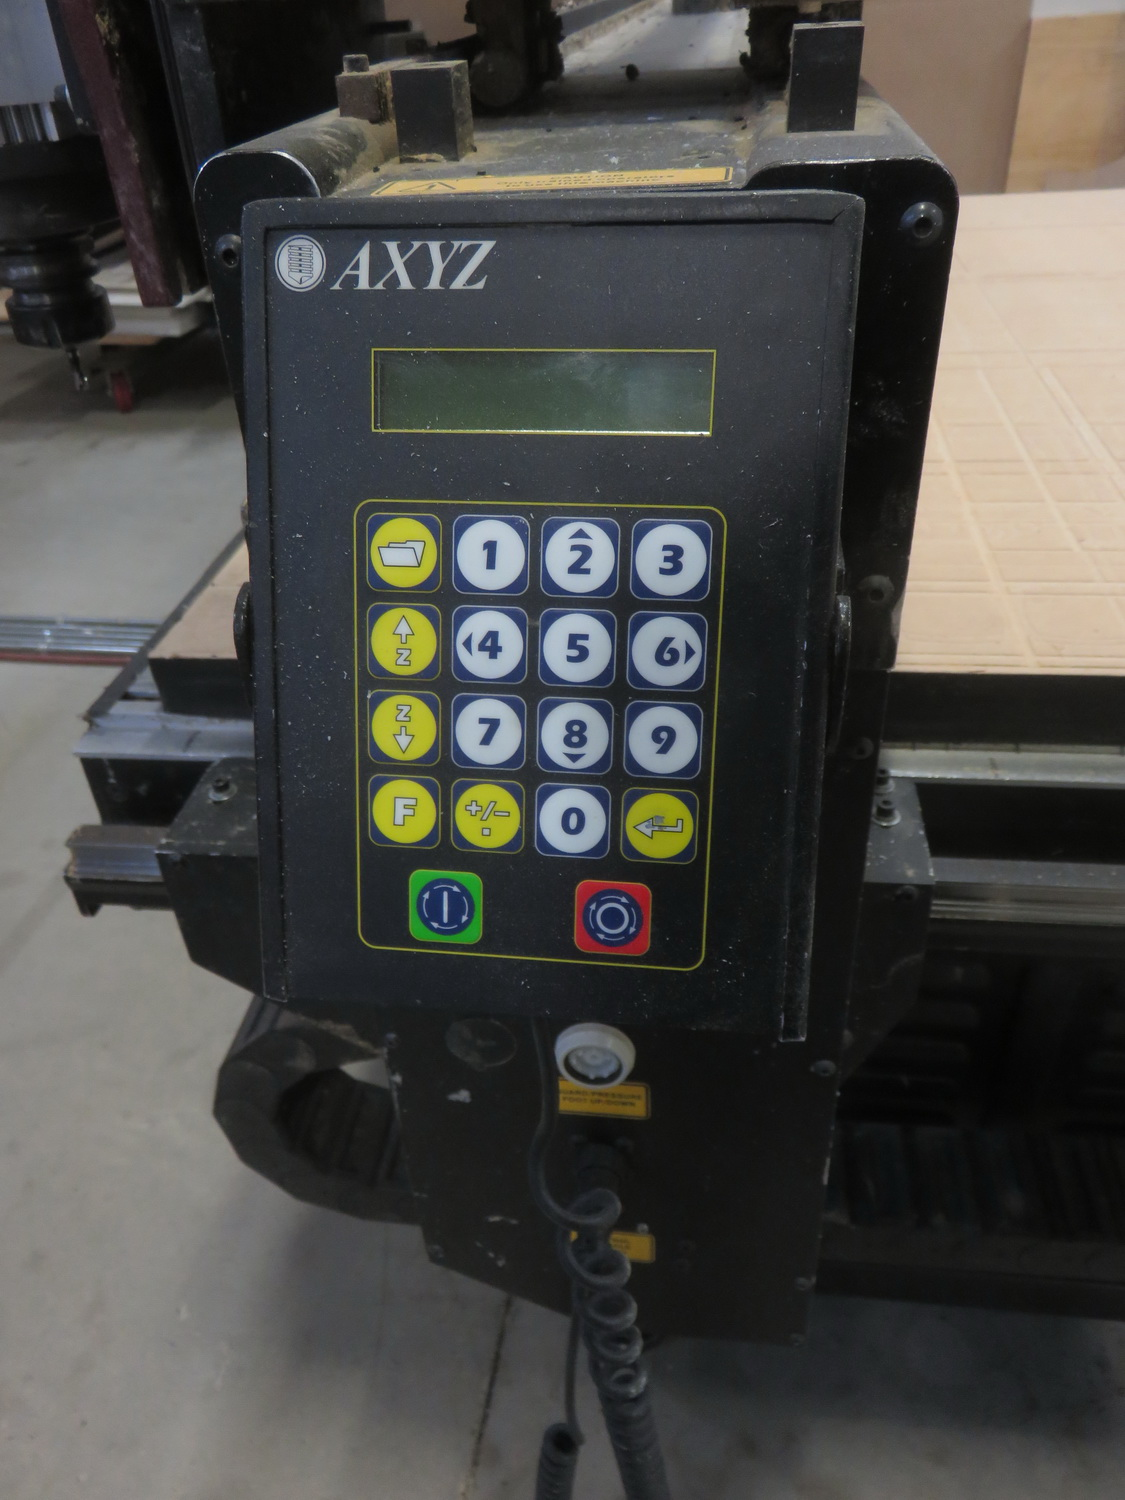 """AXYZ MODEL 4004 CNC ROUTER W/ 2004 BECKER VTLF 250 SK VACUUM PUMP, ES915 ROUTER & 72"""" X 60"""" TABLE - Image 4 of 8"""